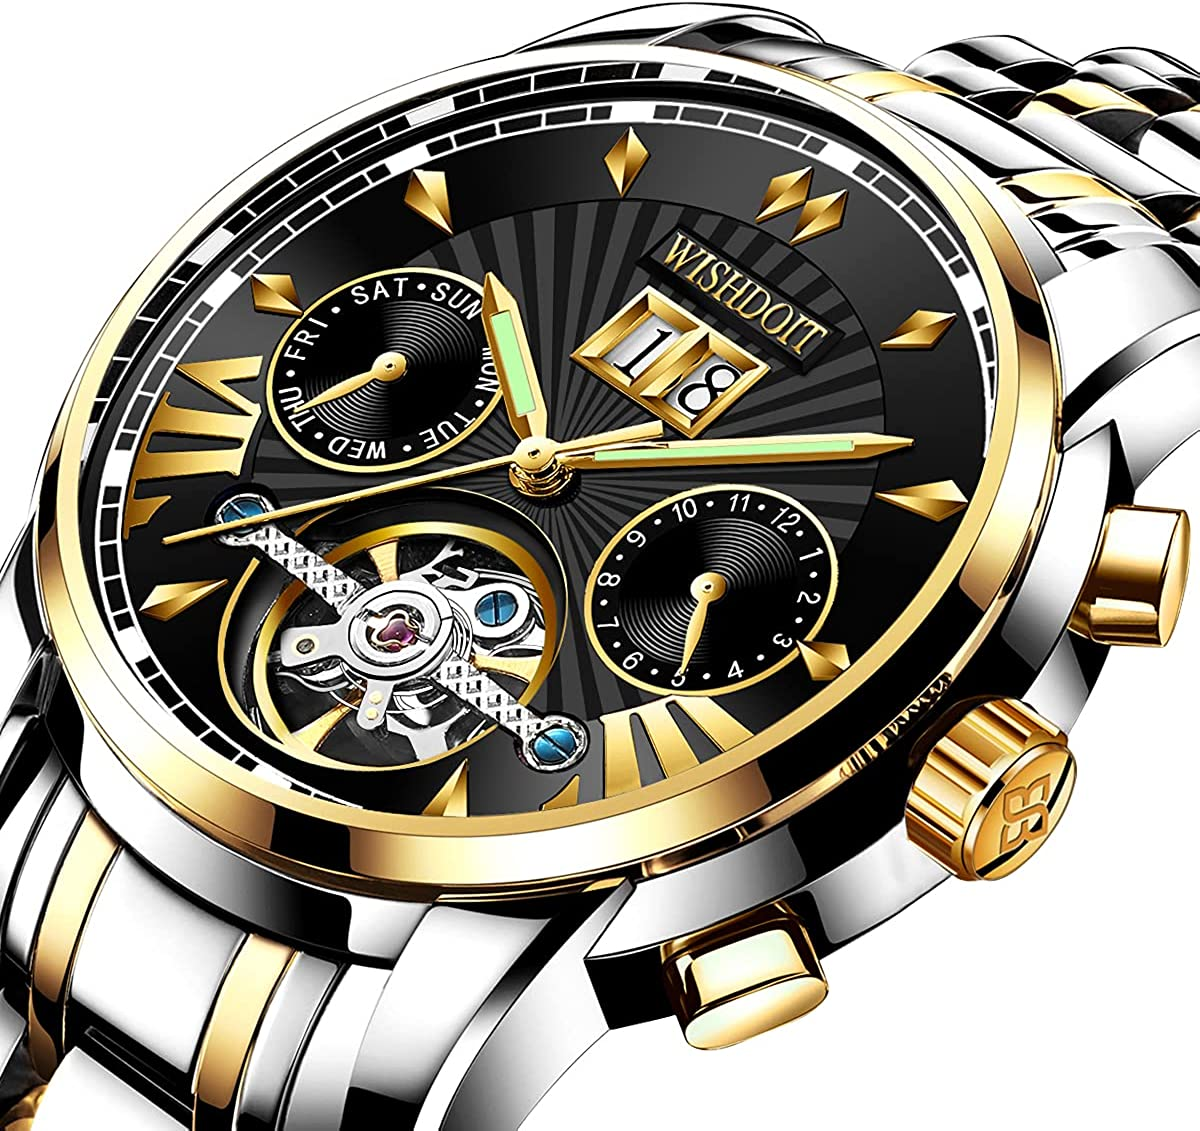 Watches for Men Automatic Stain Max 74% OFF Multifunctional Watch Mechanical Ranking TOP3